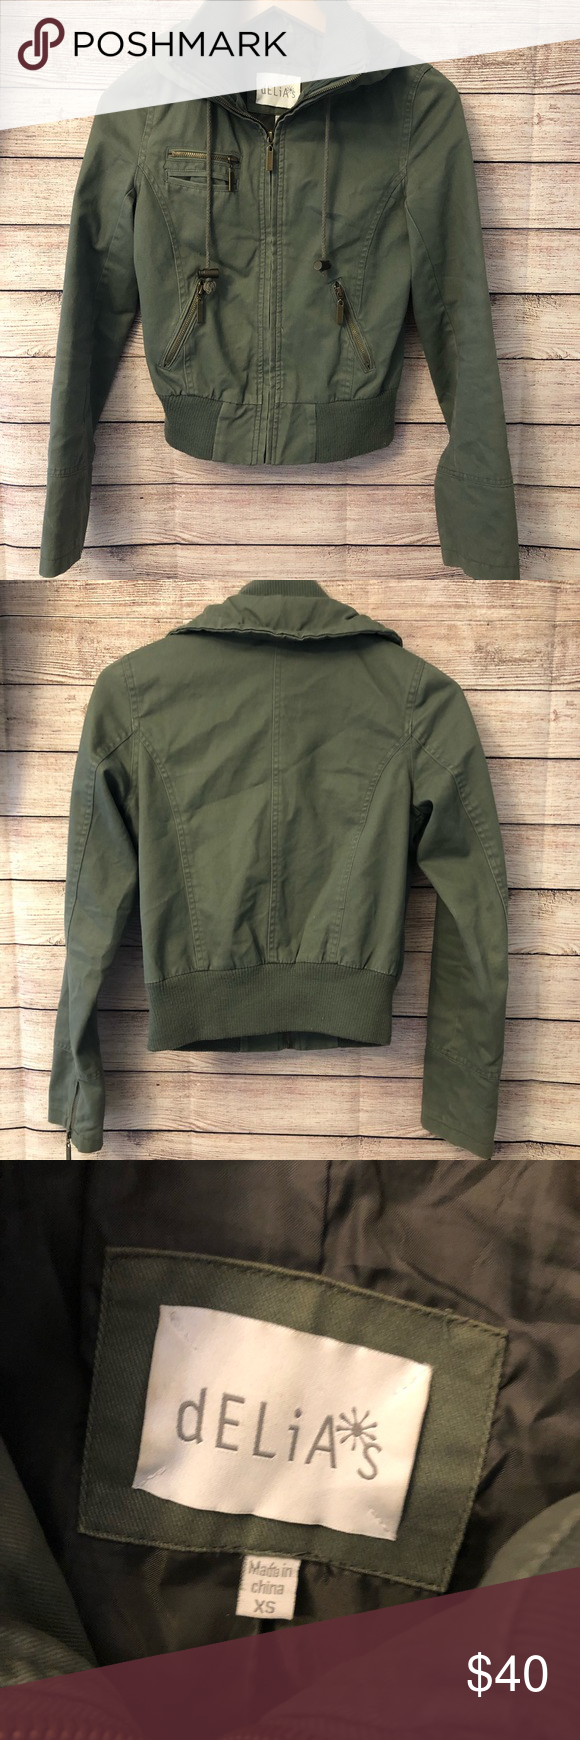 Delia S Army Green Bomber Jacket Army Green Bomber Jacket Green Bomber Jacket Army Green Bomber [ 1740 x 580 Pixel ]